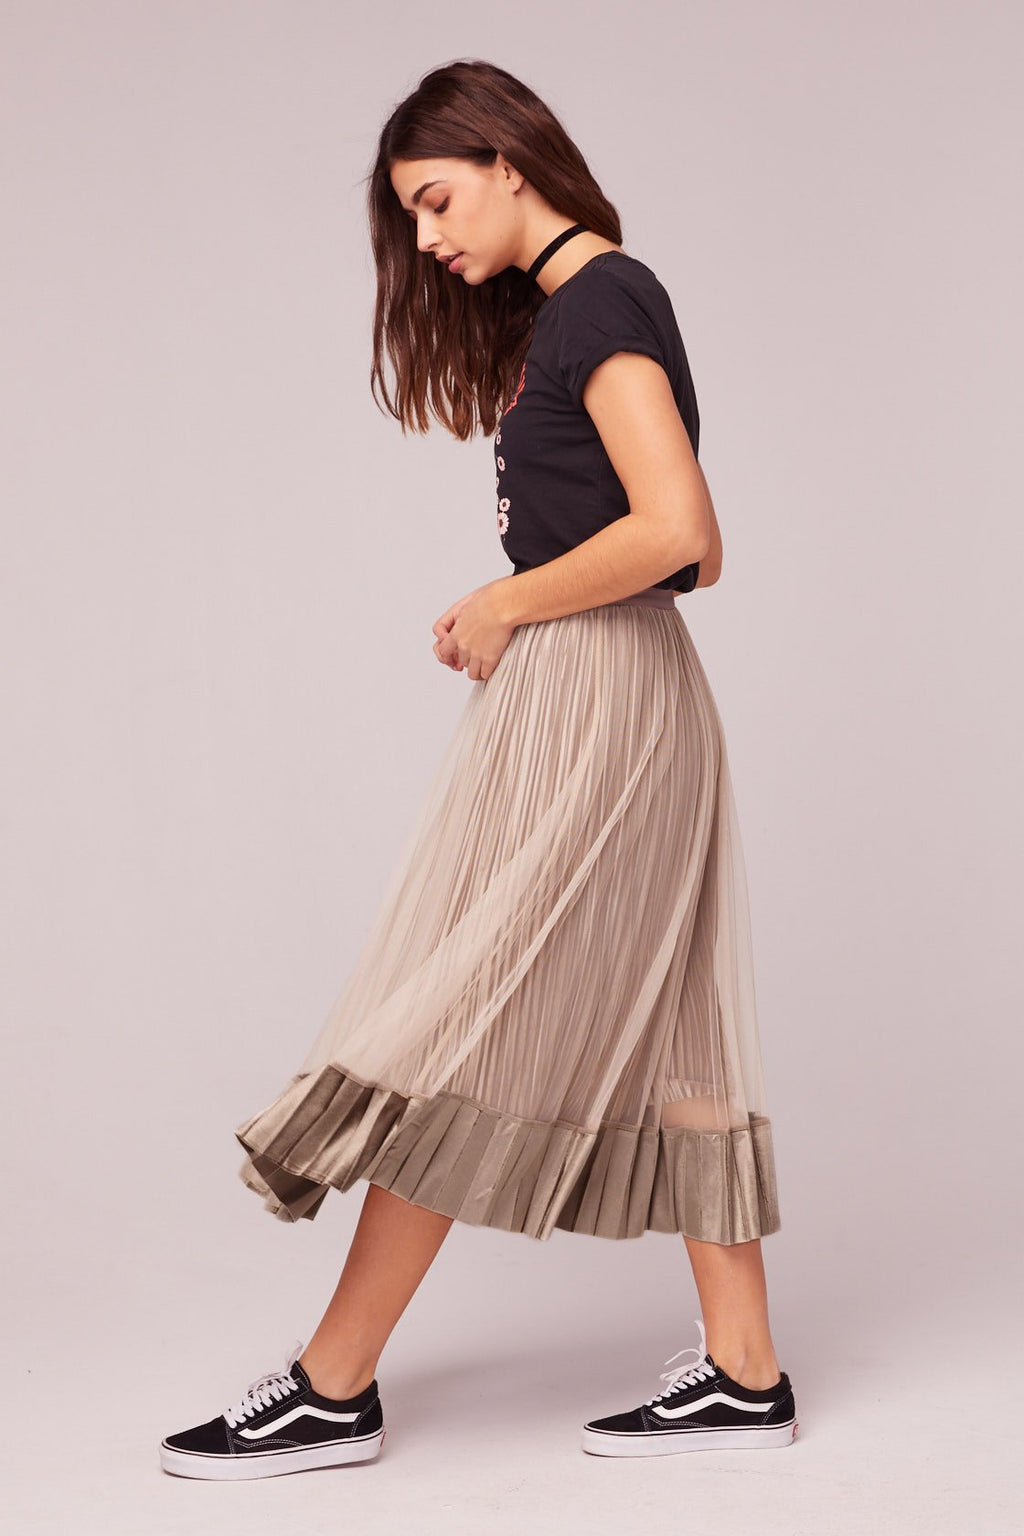 Tiny Dancer Taupe Velvet Skirt